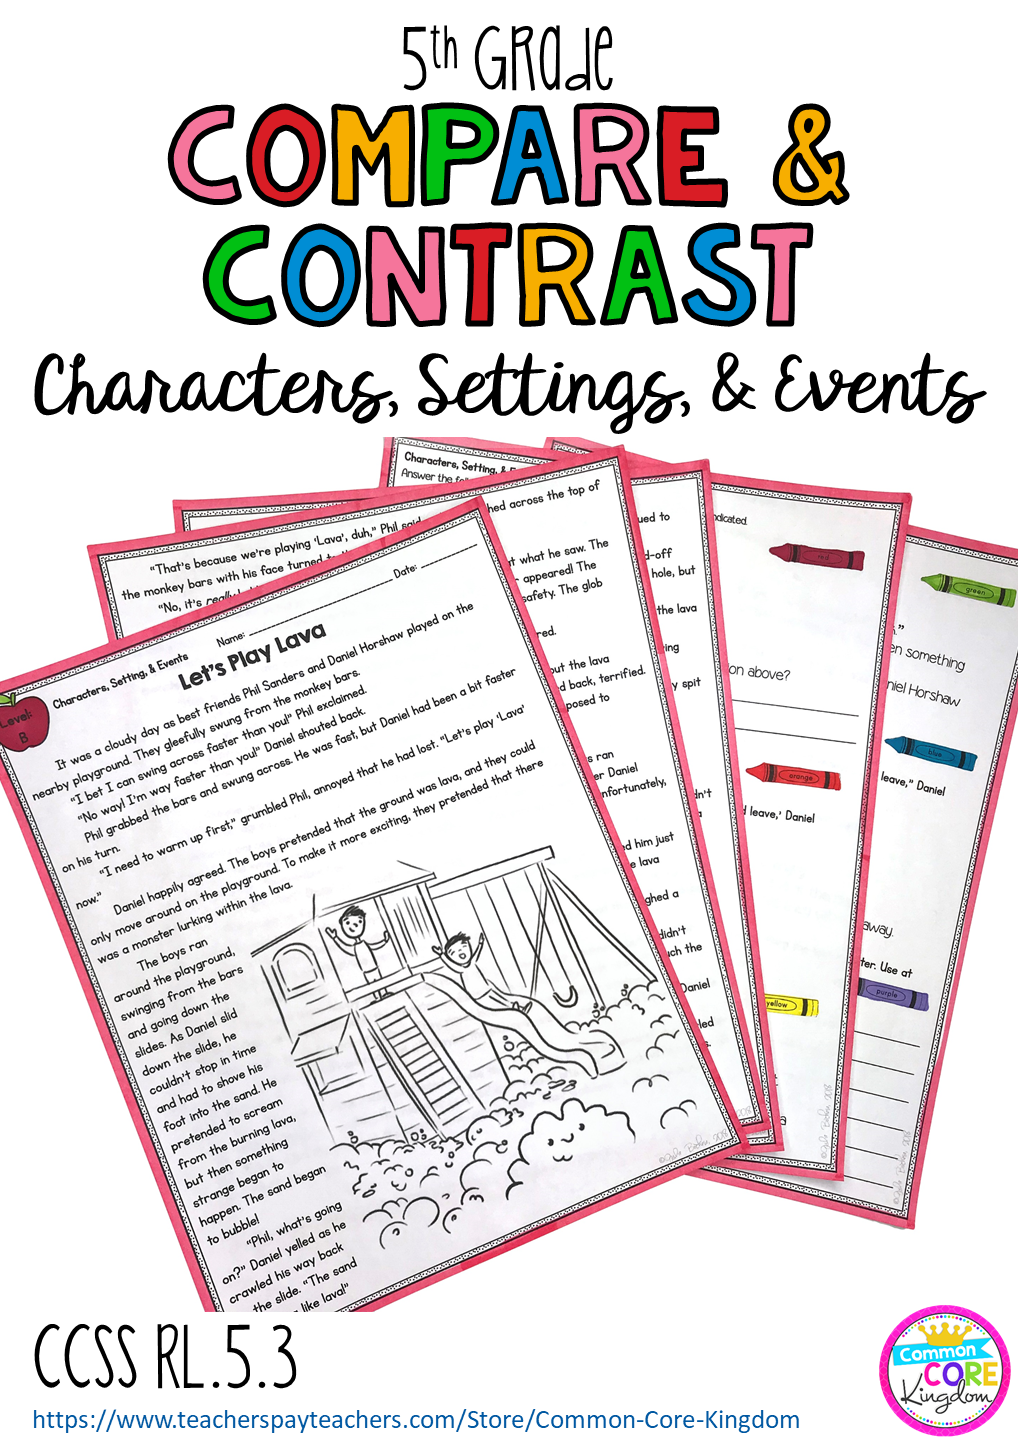 Literature Stories And Plays Dramas To Teach Your 5th Graders How To Compa Compare And Contrast Reading Comprehension Passages Teaching Reading Comprehension [ 1440 x 1018 Pixel ]